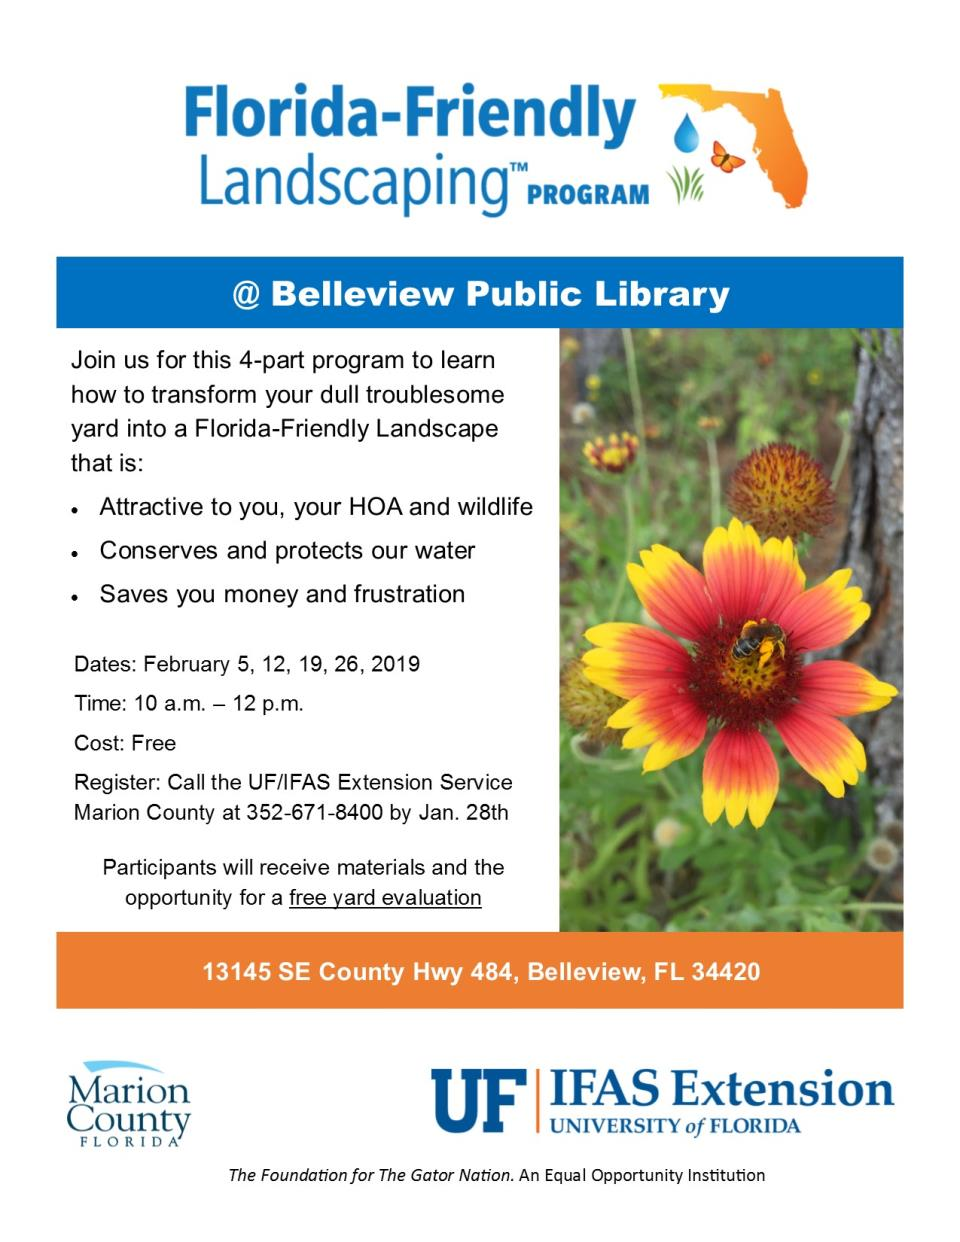 2019 FFL Flyer - Belleview Library